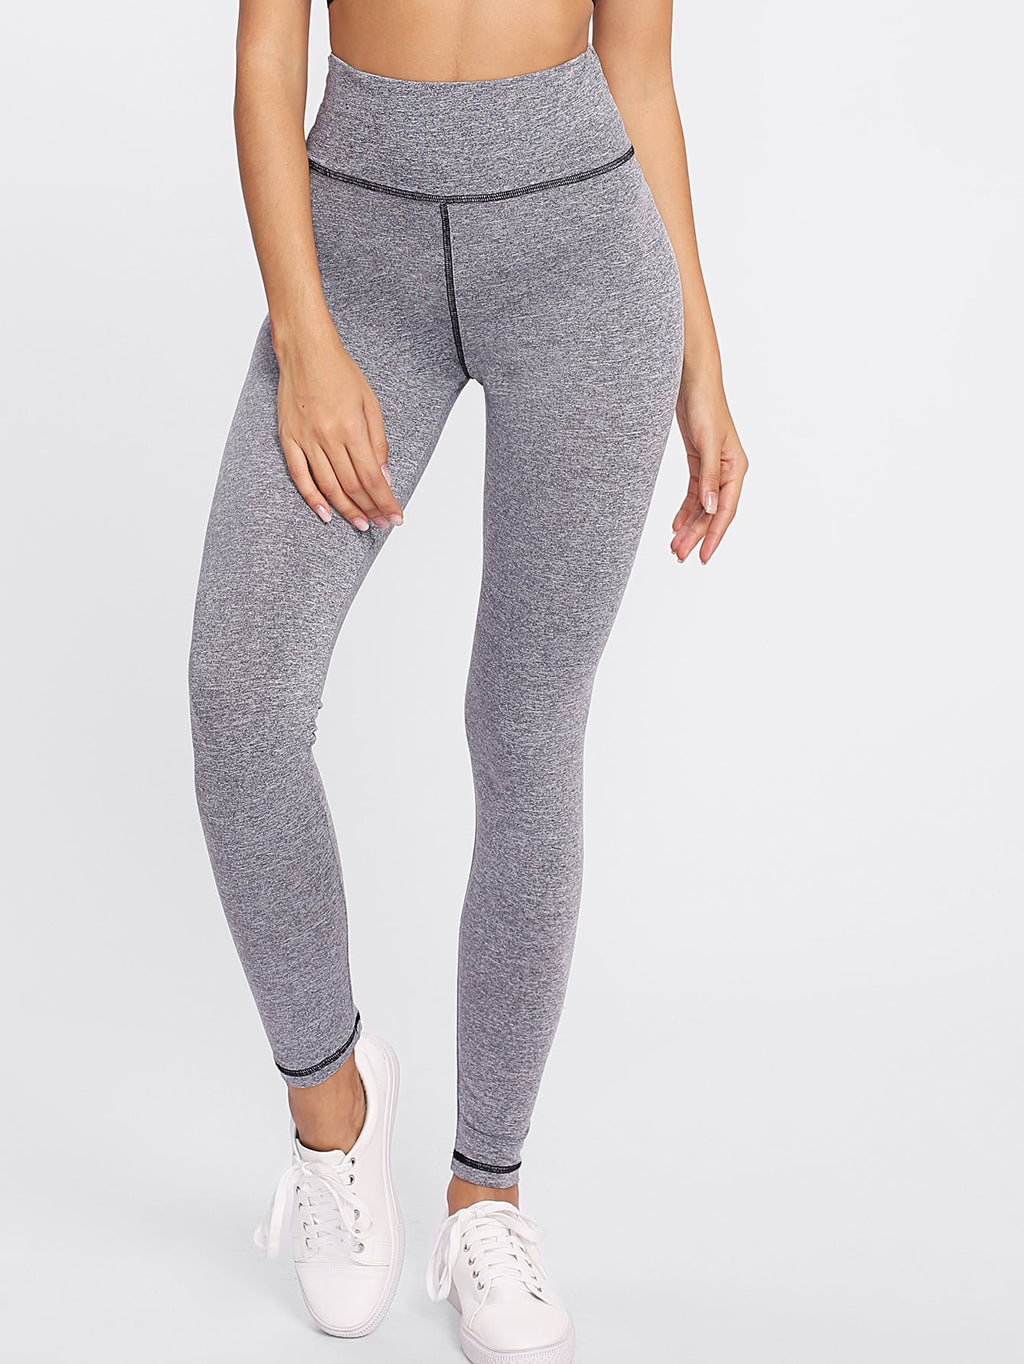 Strick Leggings mit hoher Taille